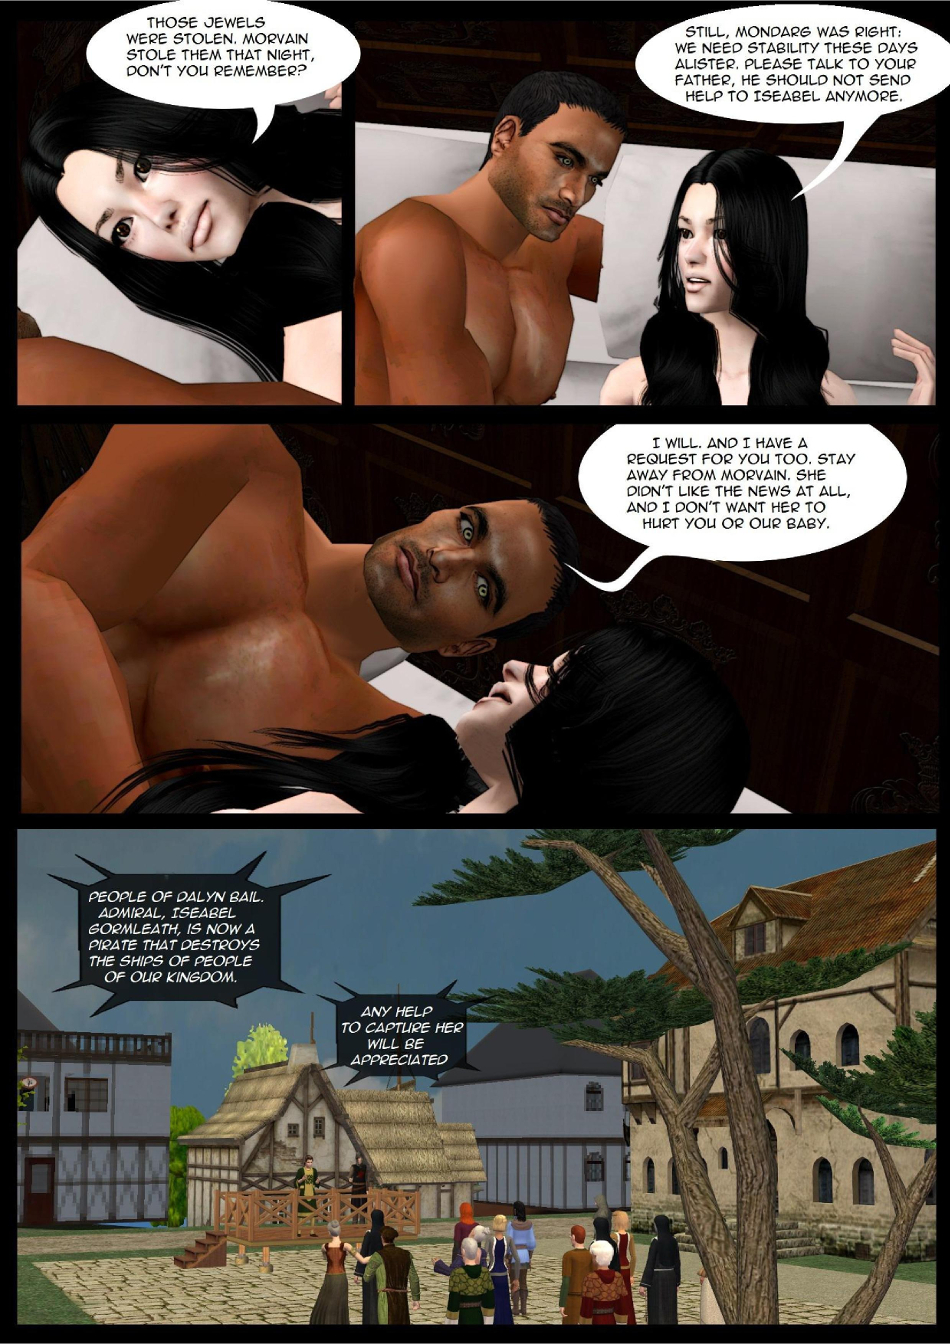 The barracks p5